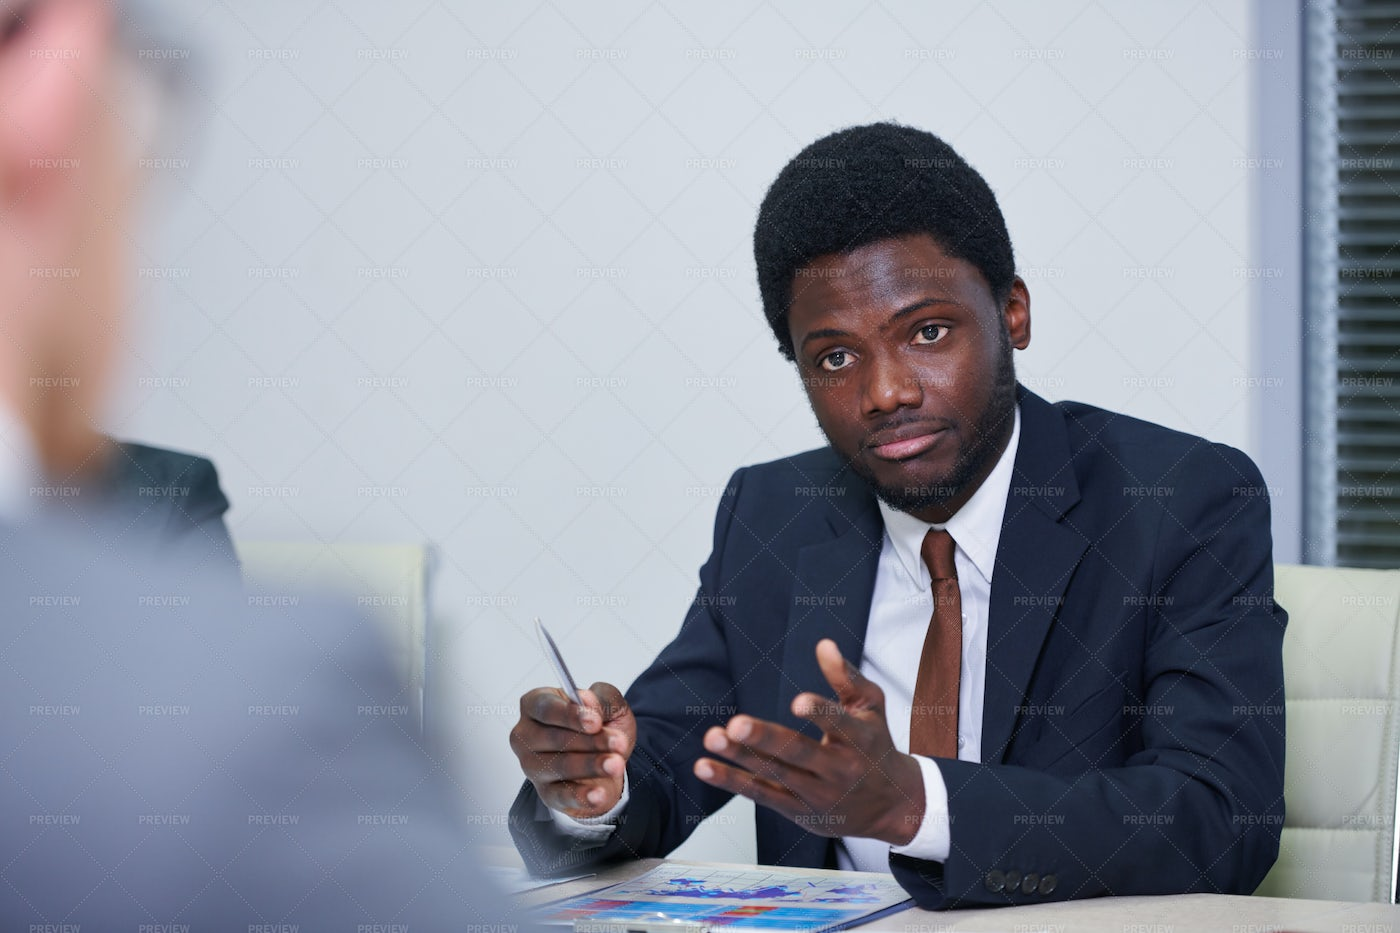 Young African Economist In...: Stock Photos